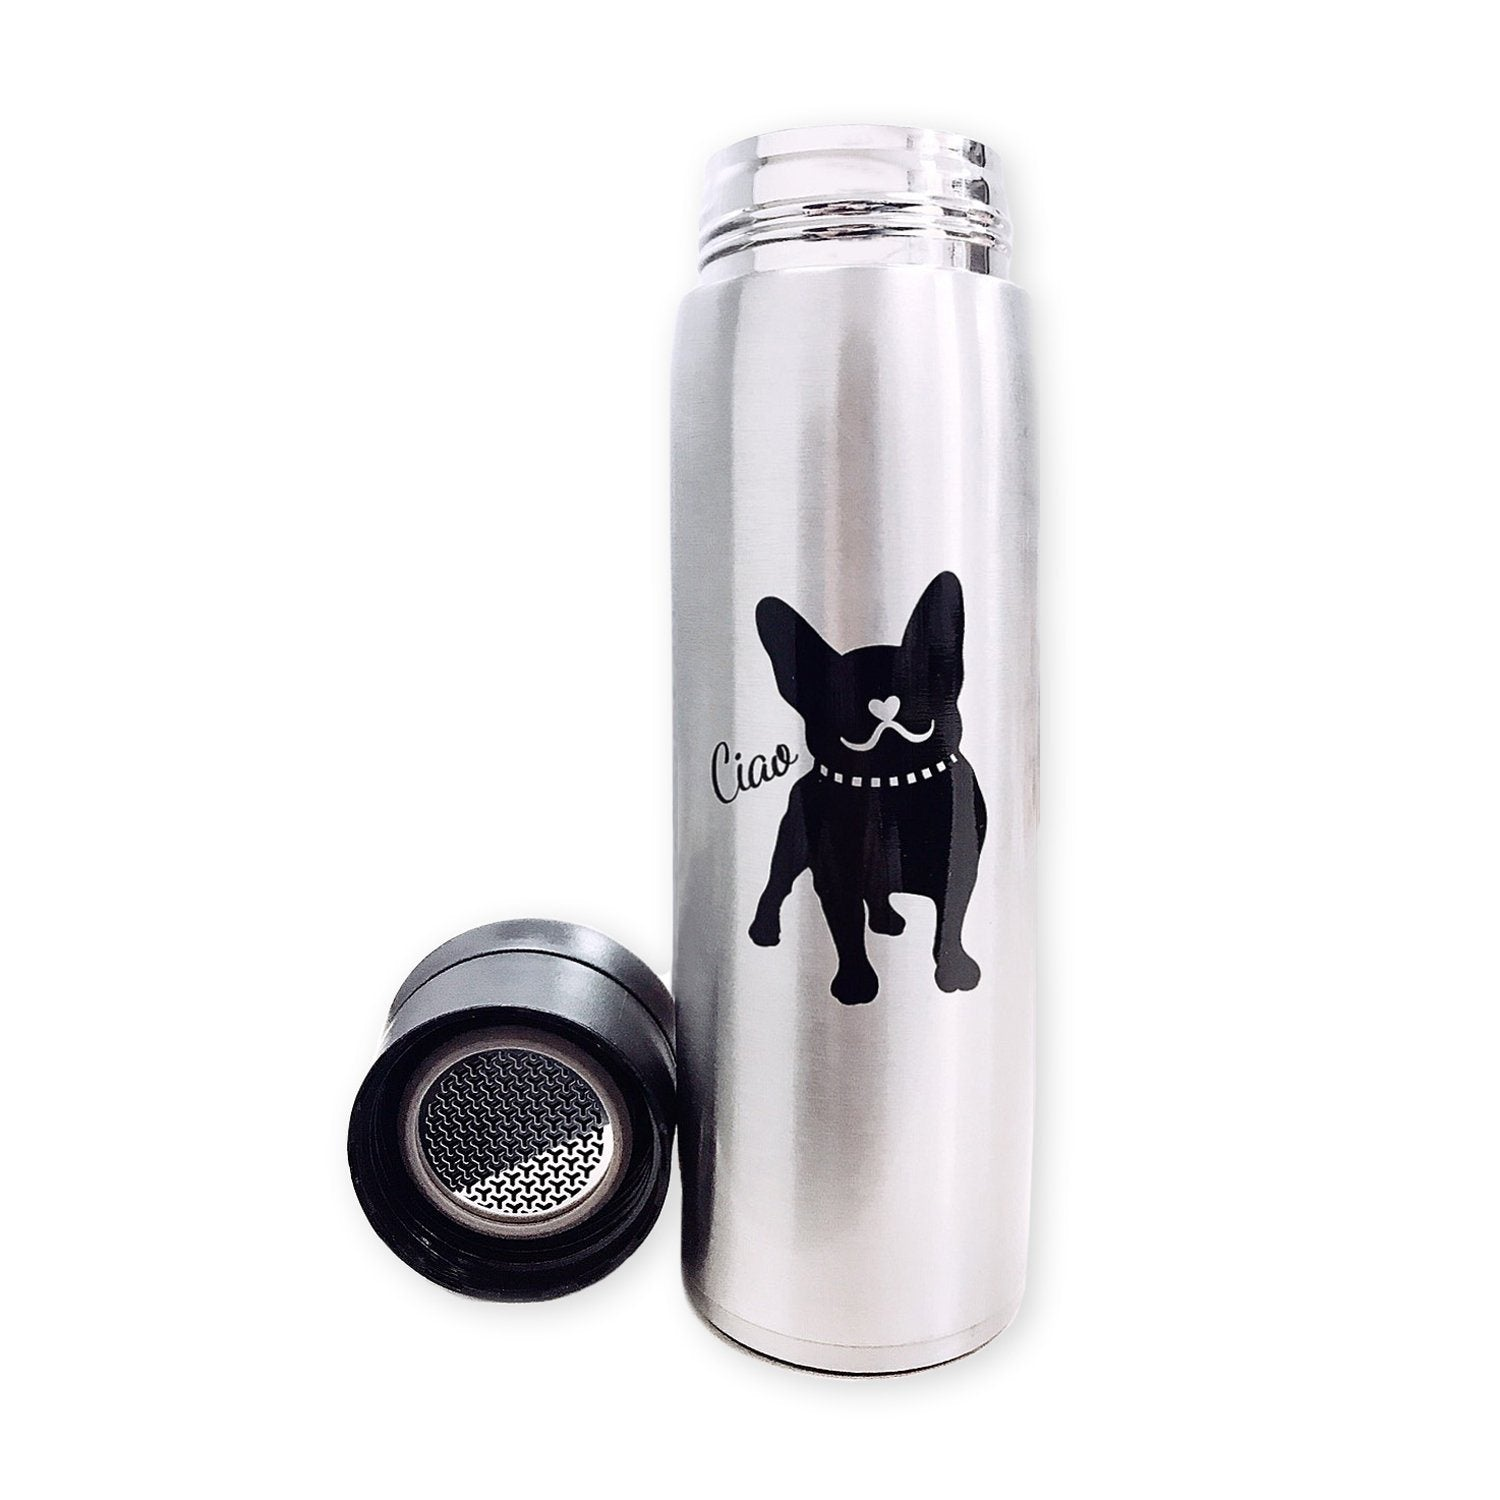 Frenchic French Bulldog Stainless Steel Thermos Bottle 17oz 500 ml Container For You Frenchic